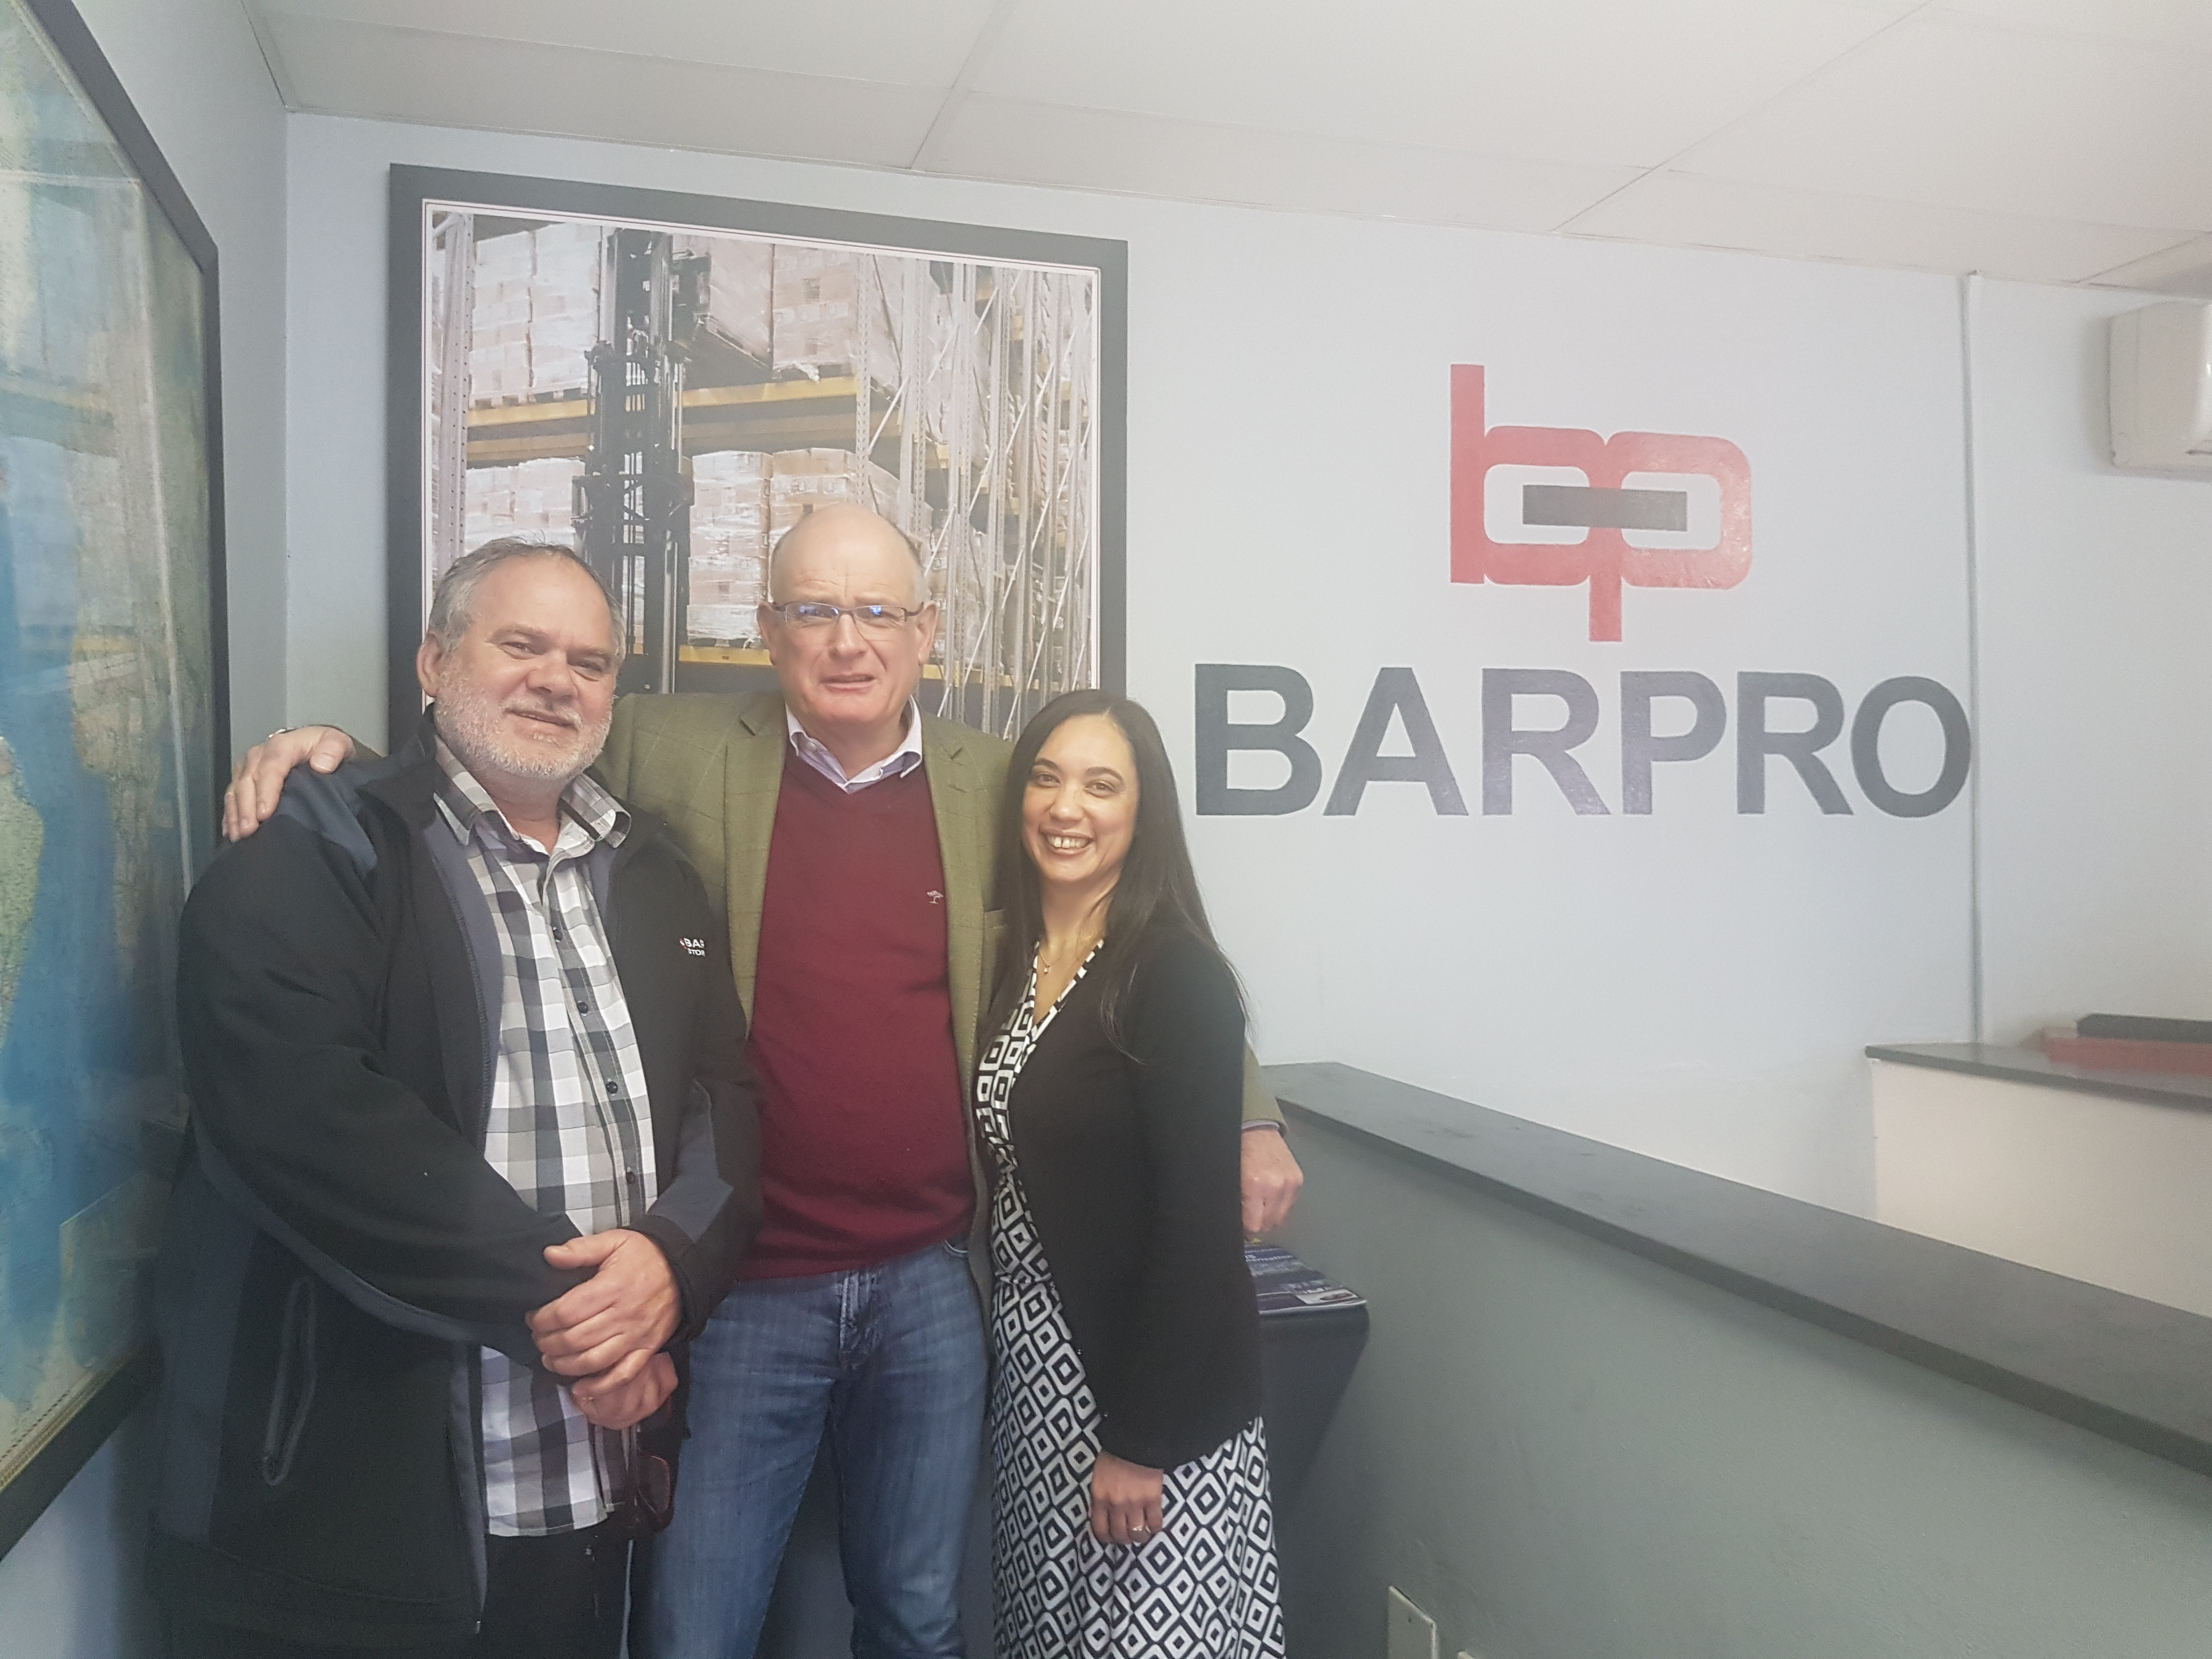 Barpro Storage Celebrating 21 Years in mobile racking and shelving